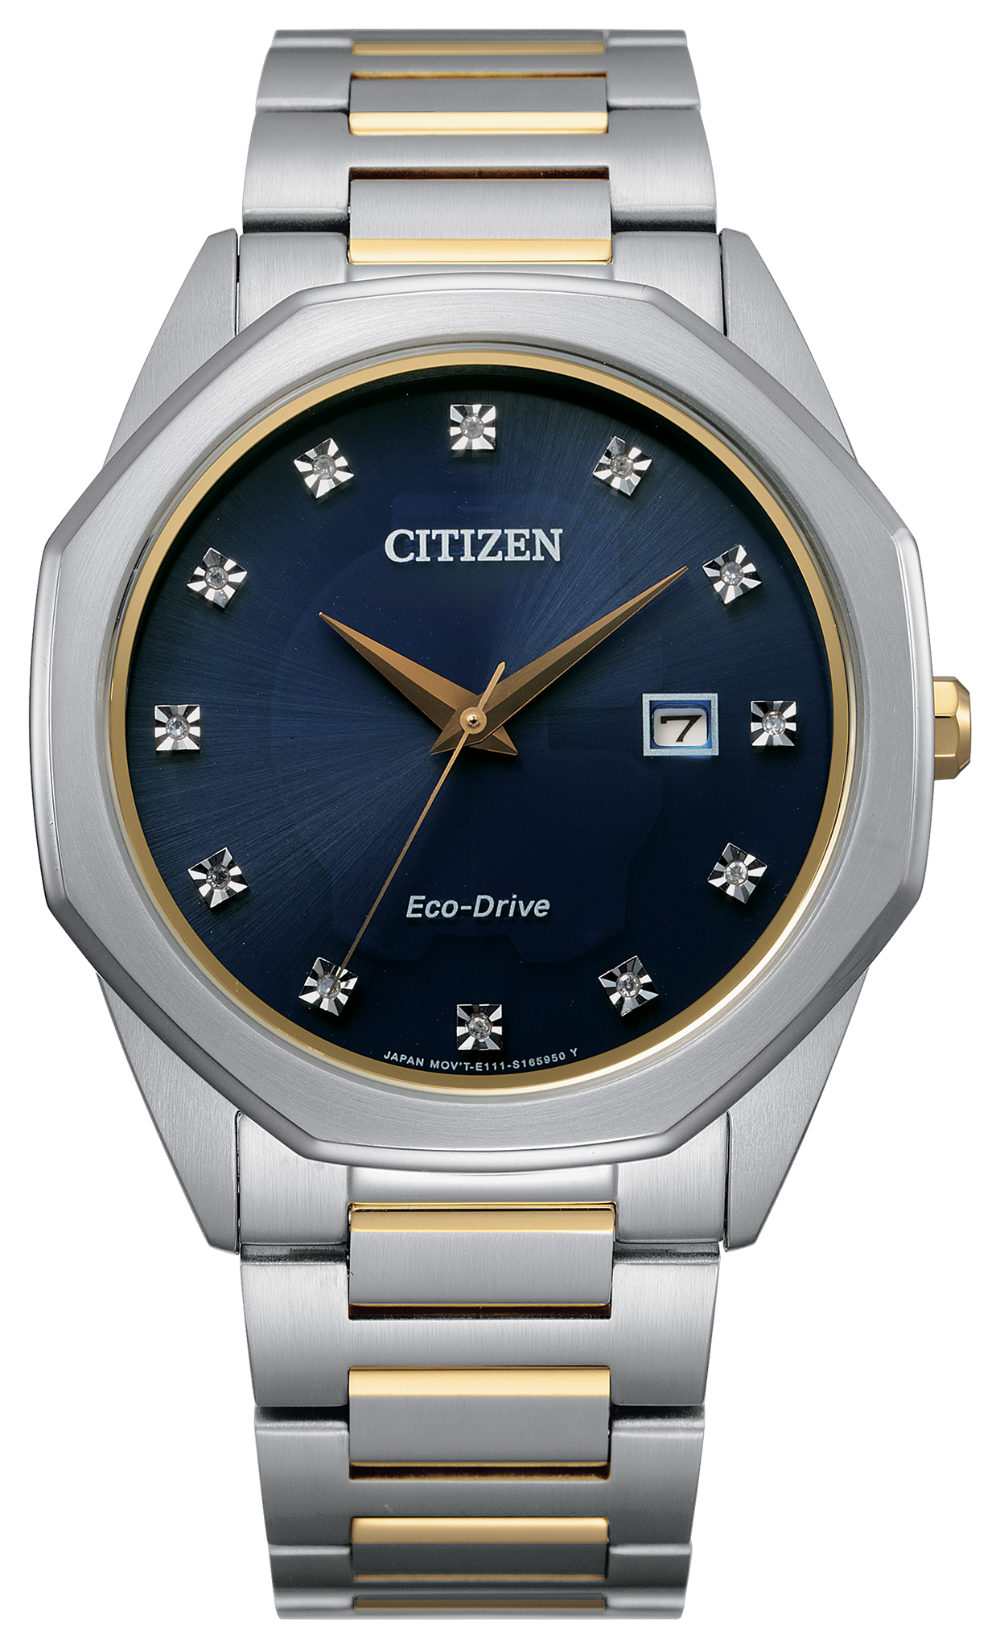 Corso Gold Trim - Citizen Eco Drive